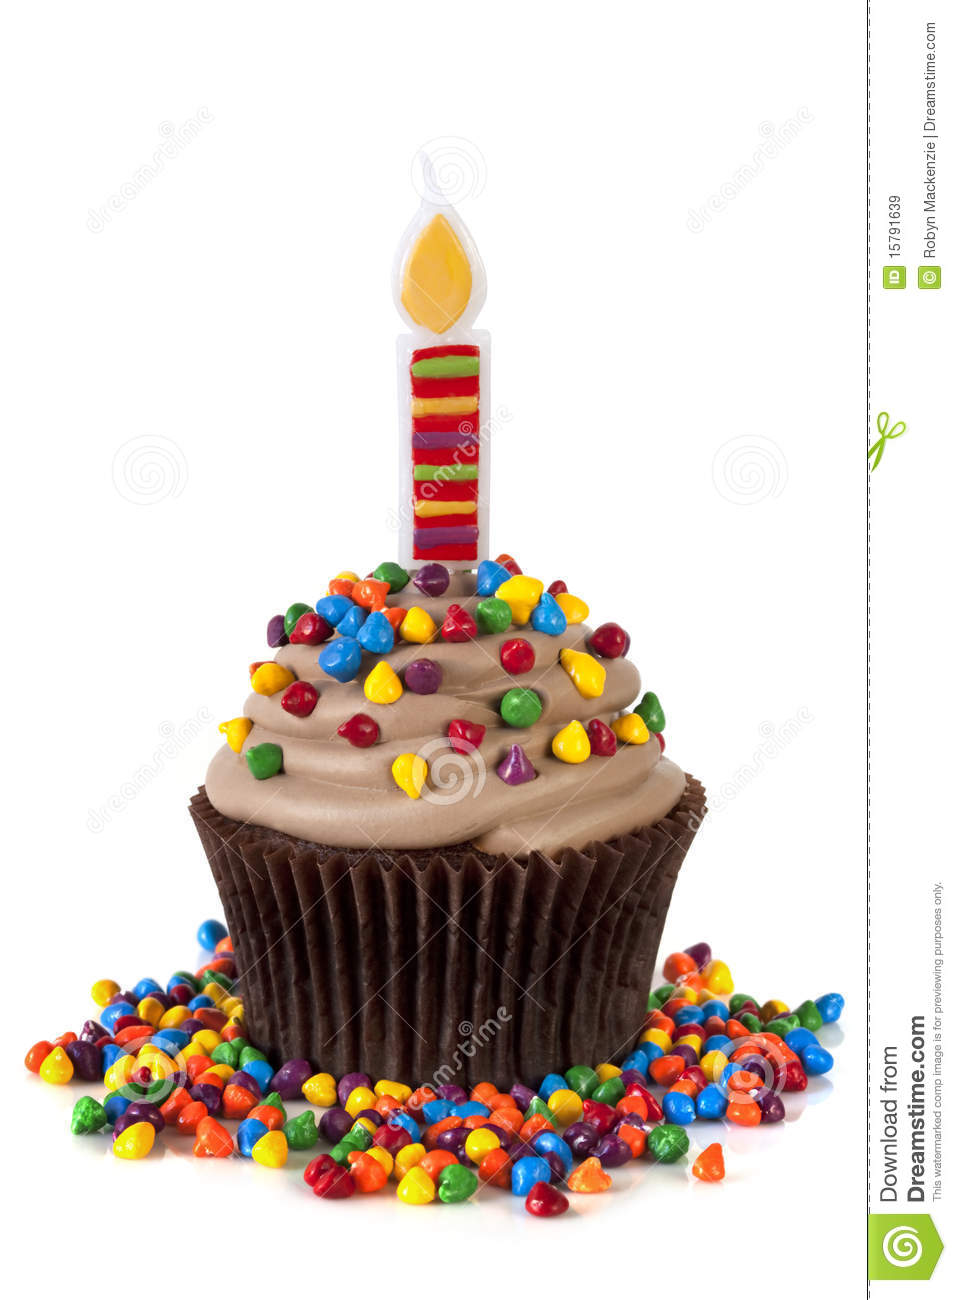 Birthday Cake And Candles Clipart